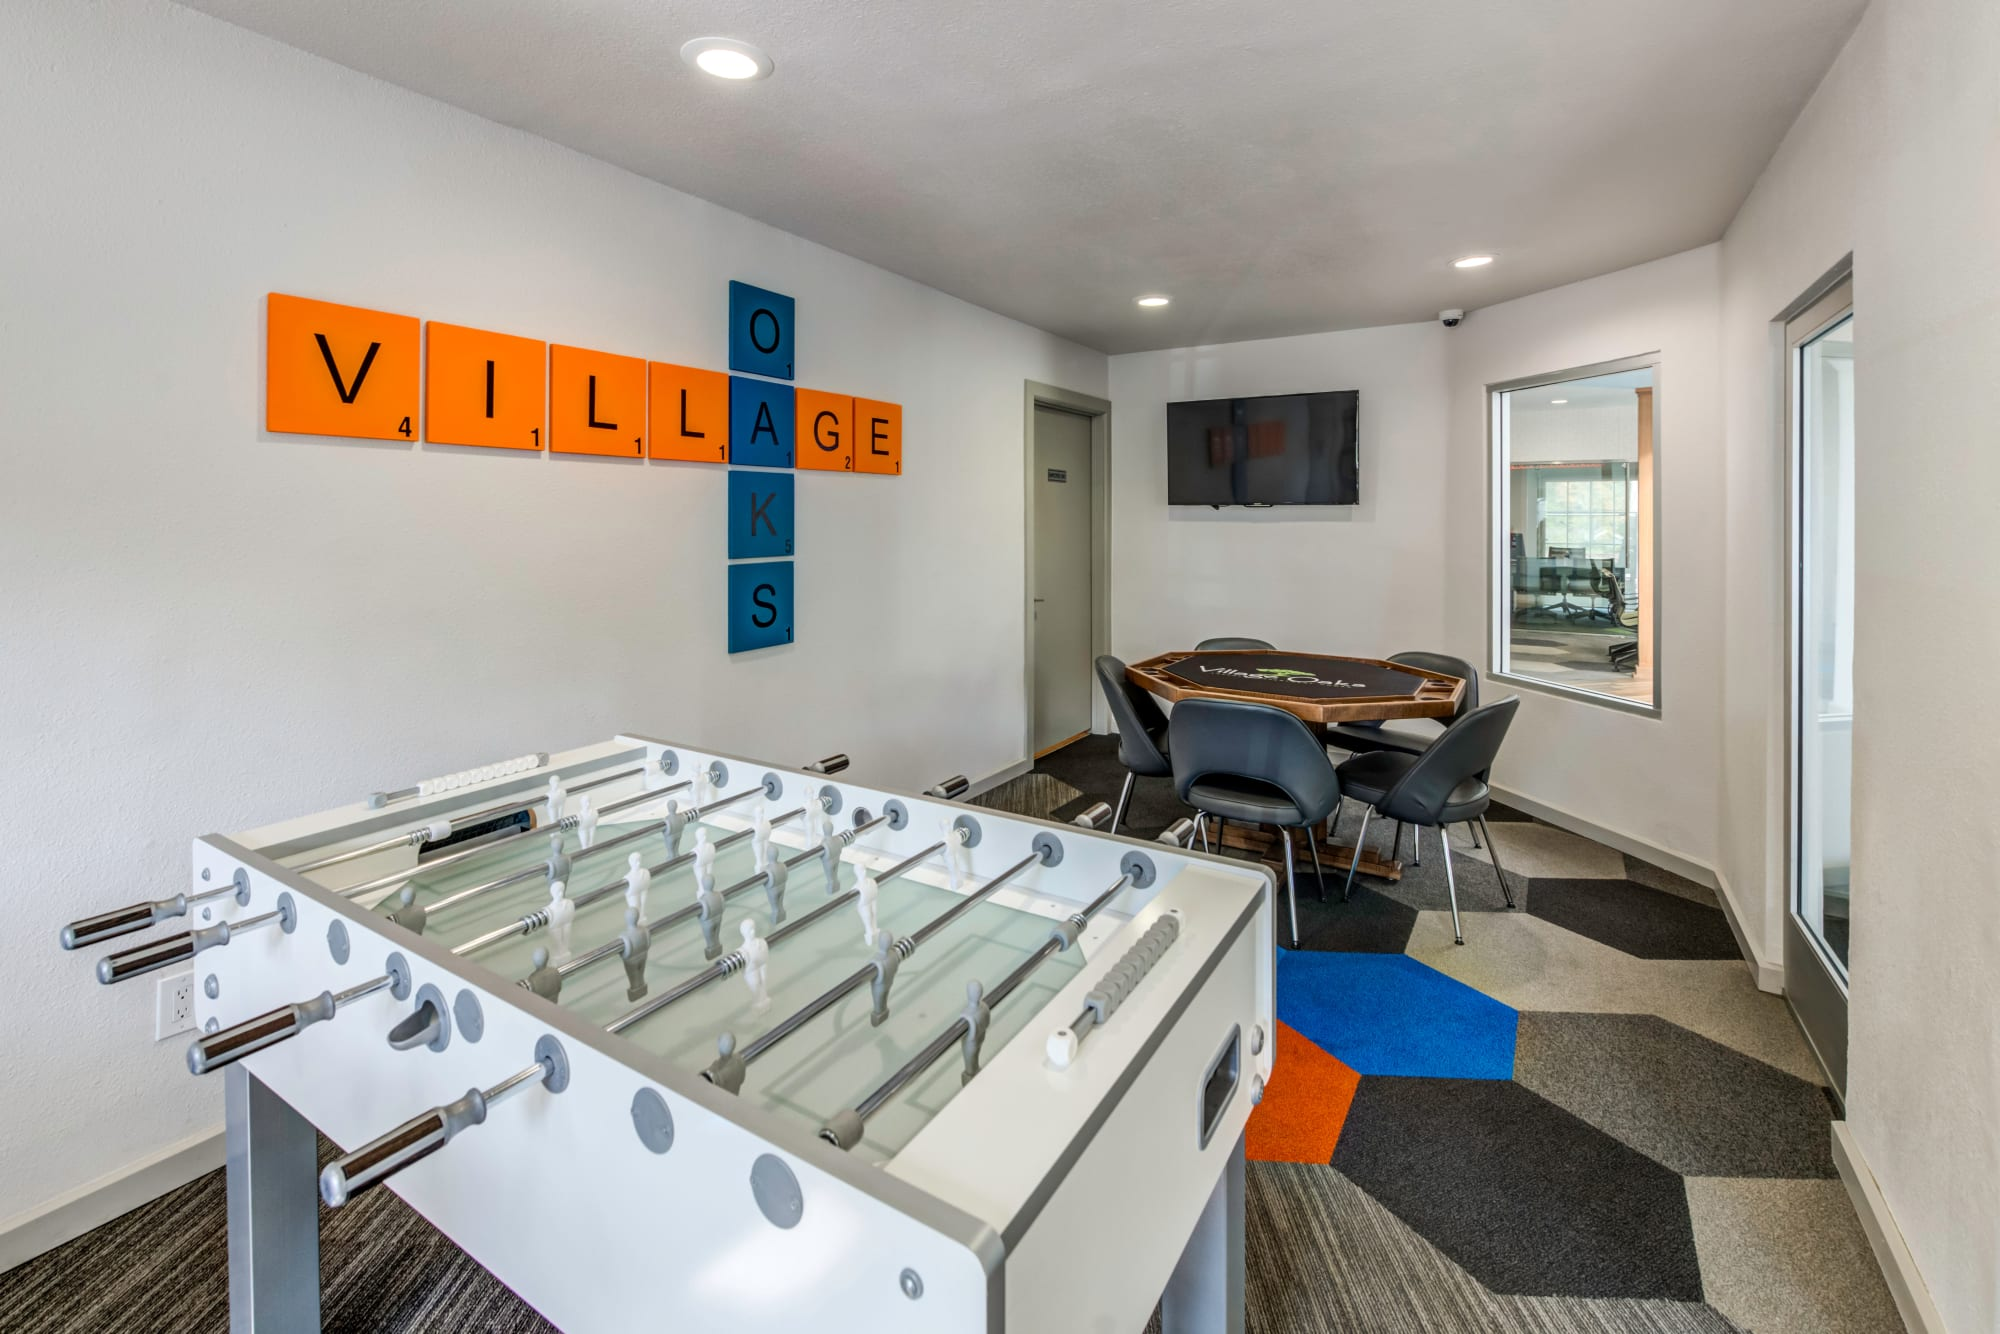 Game room with Foosball and a poker table at Village Oaks in Chino Hills, California